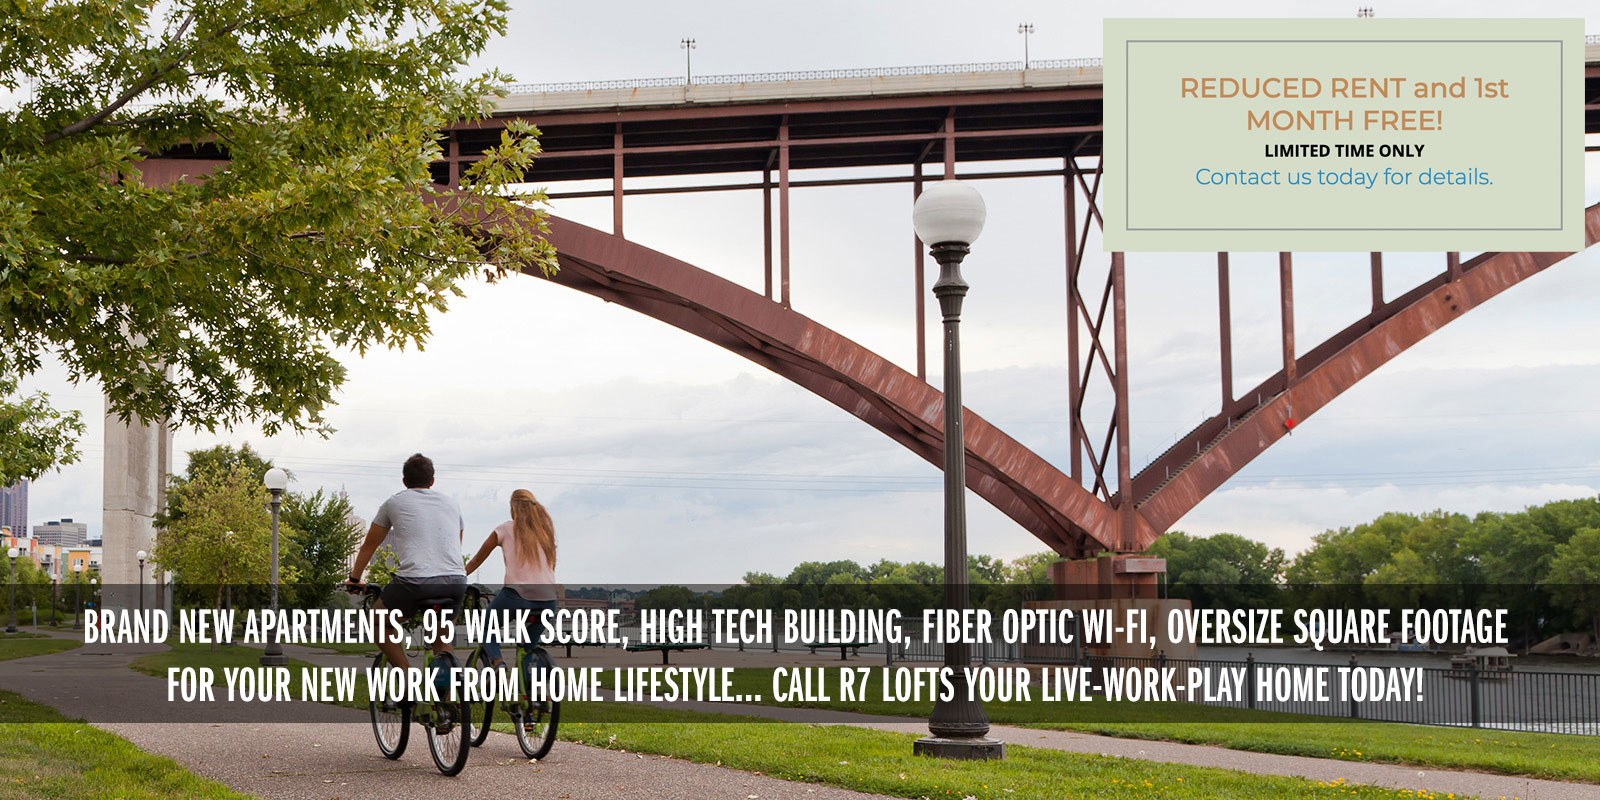 outdoor-lifestyle-biking-stpaul